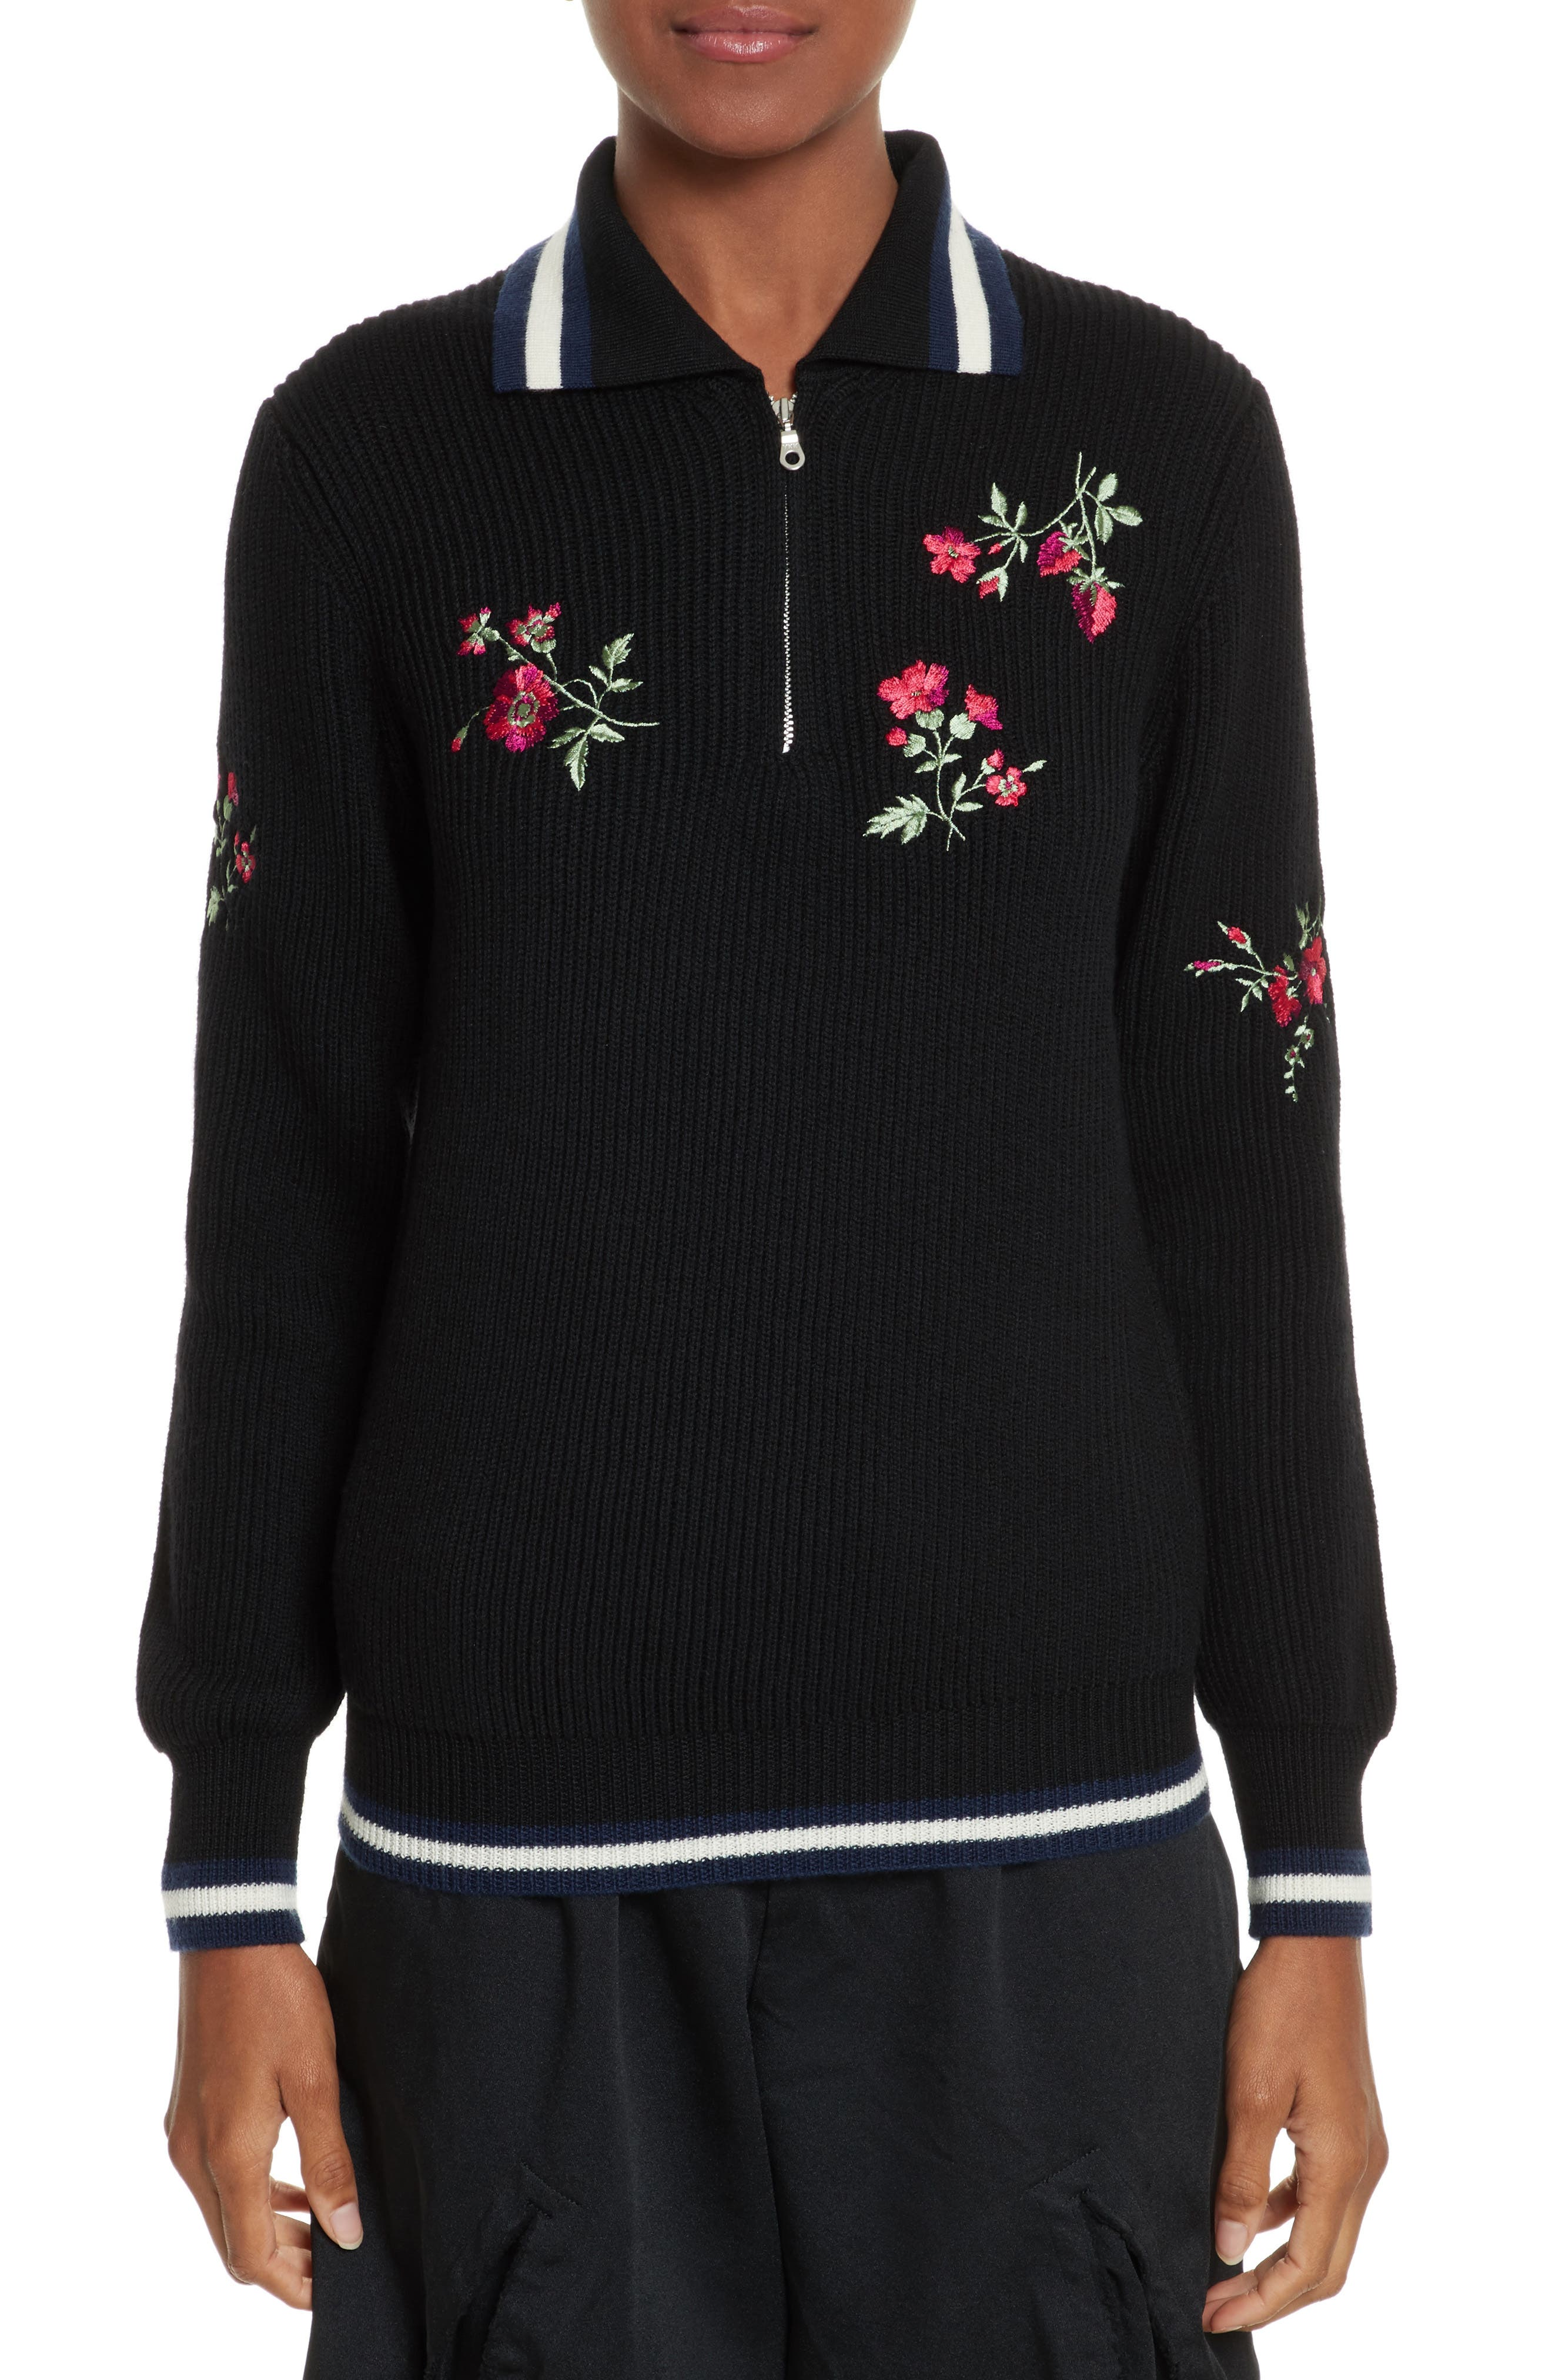 Main Image - Tricot Comme des Garçons Half Zip Rugby Pullover